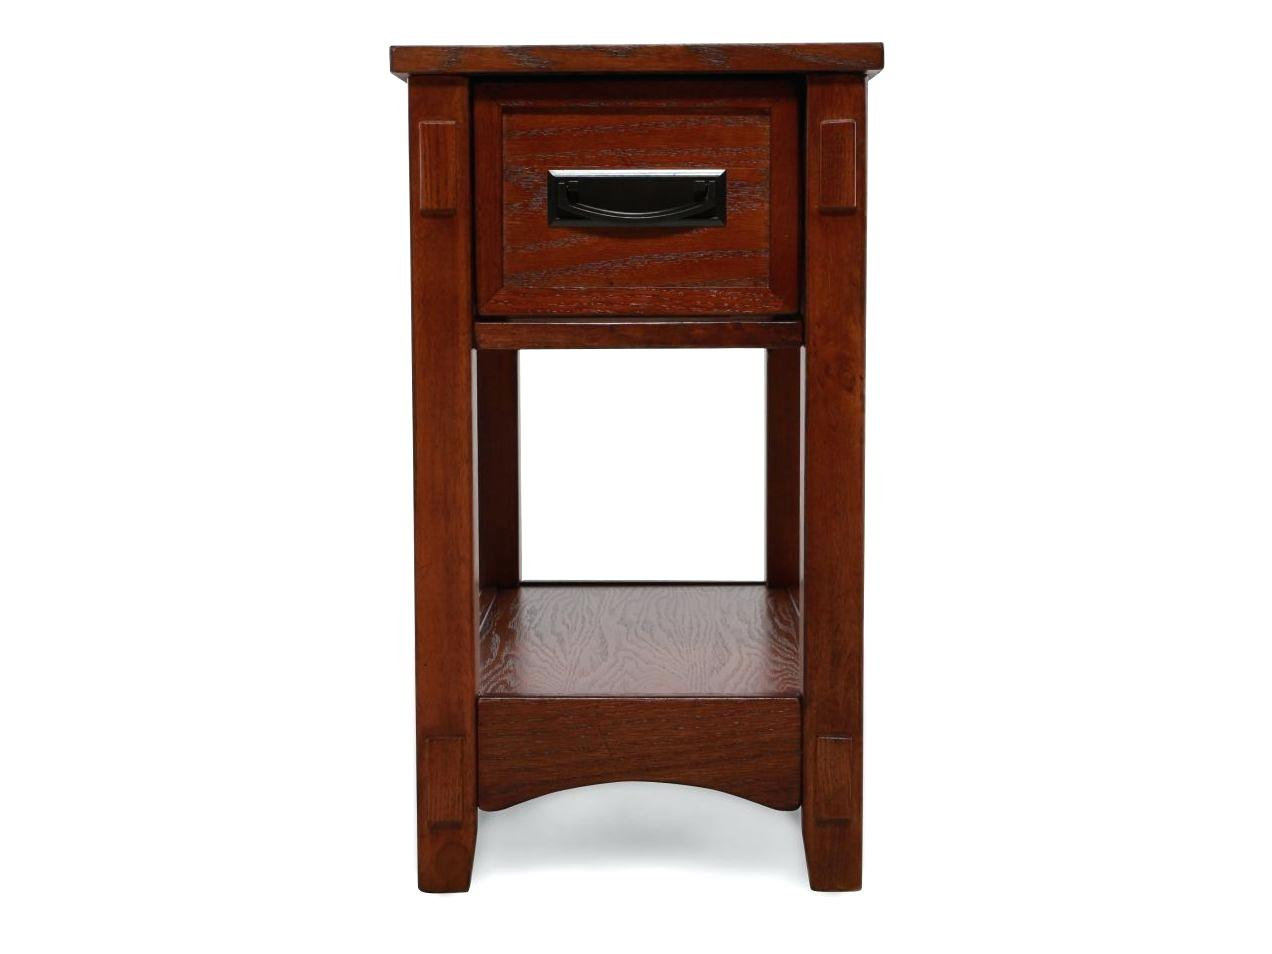 hall accent table monarch specialties console contemporary one drawer end medium brown entry tables small round metal garden silver nautical light fixtures indoor dale tiffany